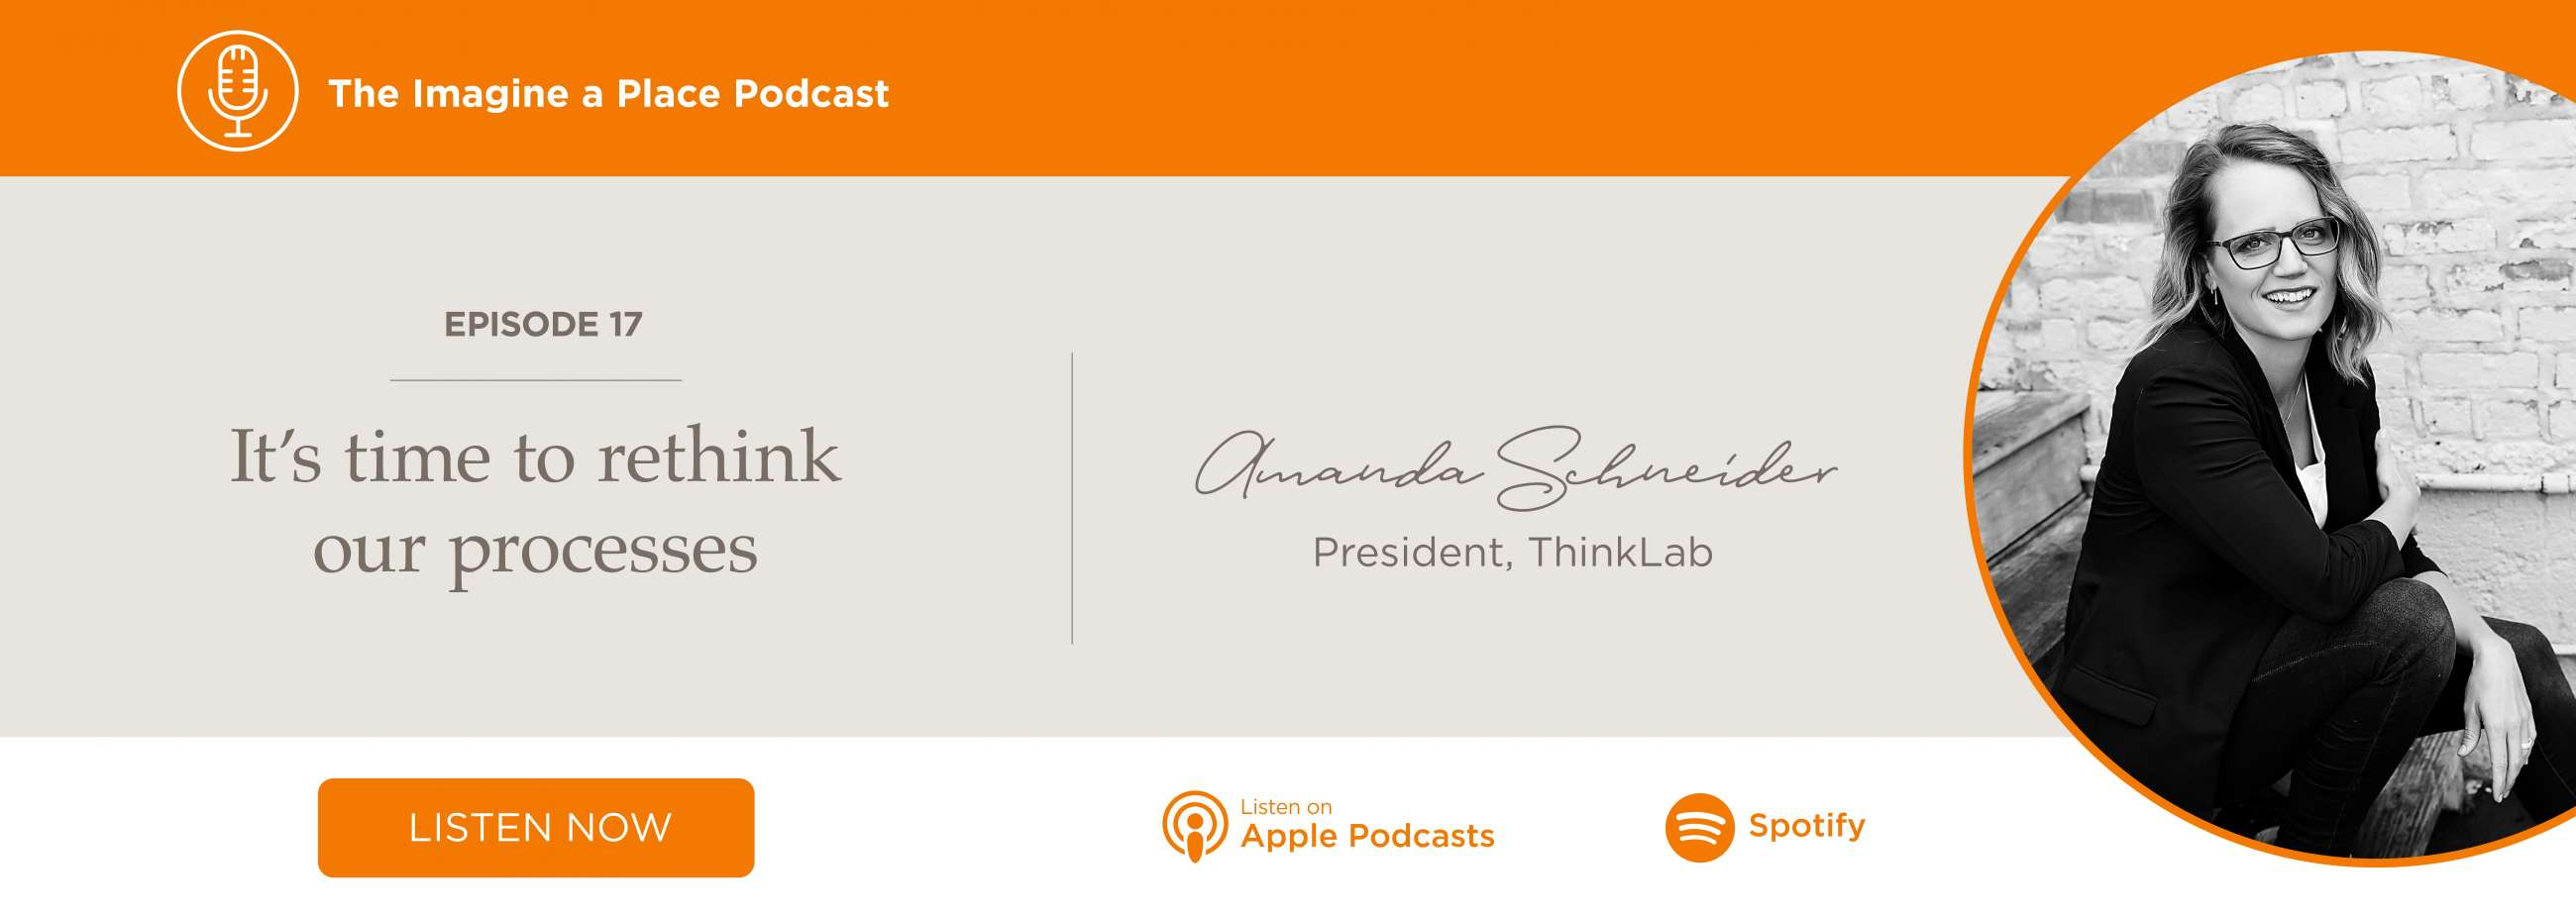 Amanda Schneider (ThinkLab): It's time to rethink our processes